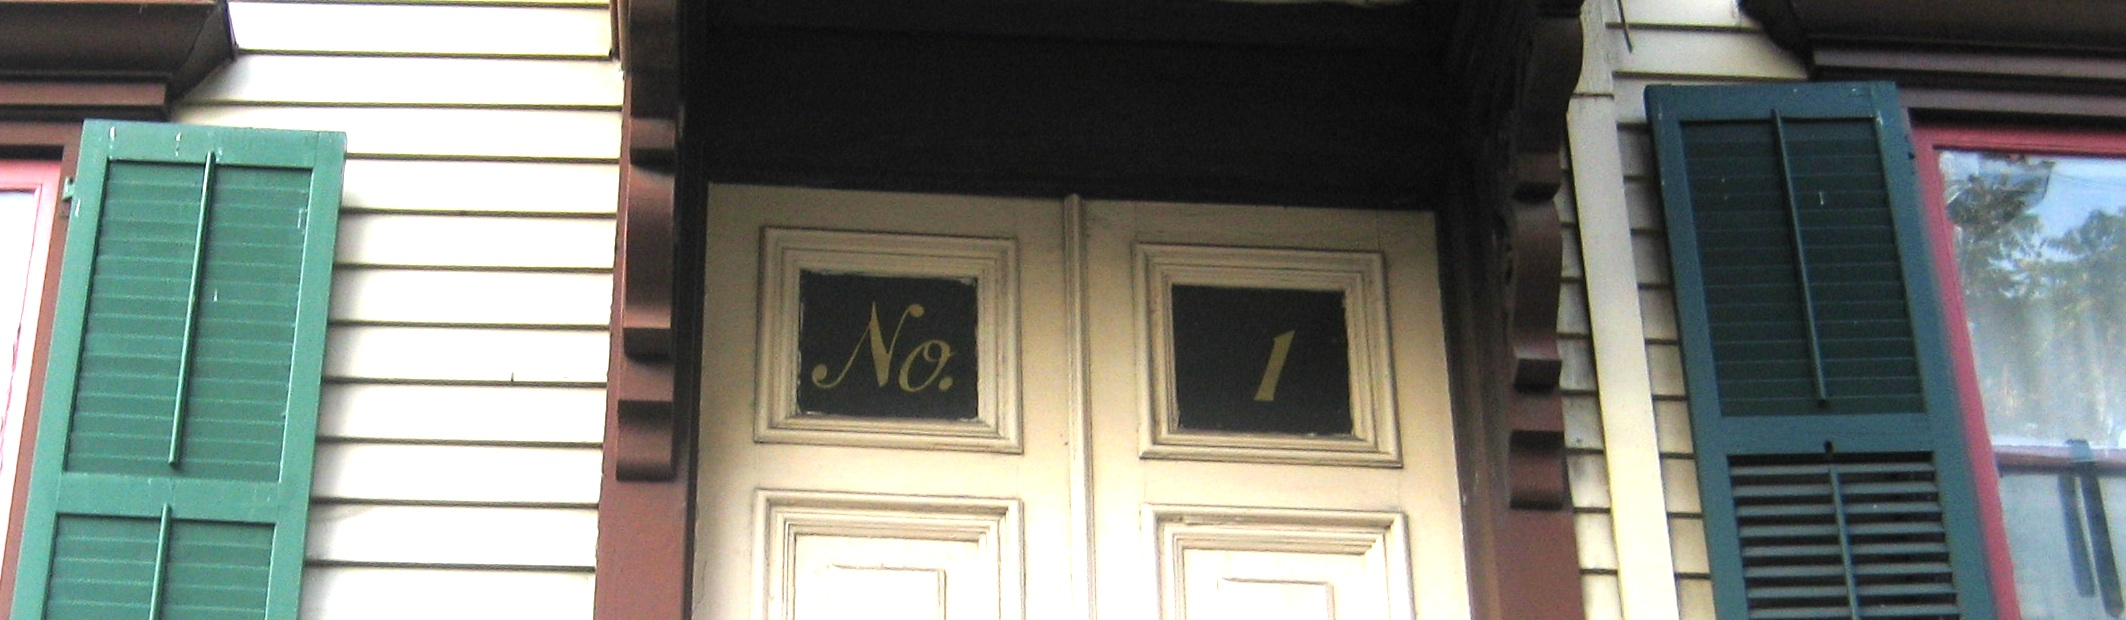 Decorating apartment door numbers pictures : apartment numbers and letters | Ephemeral New York